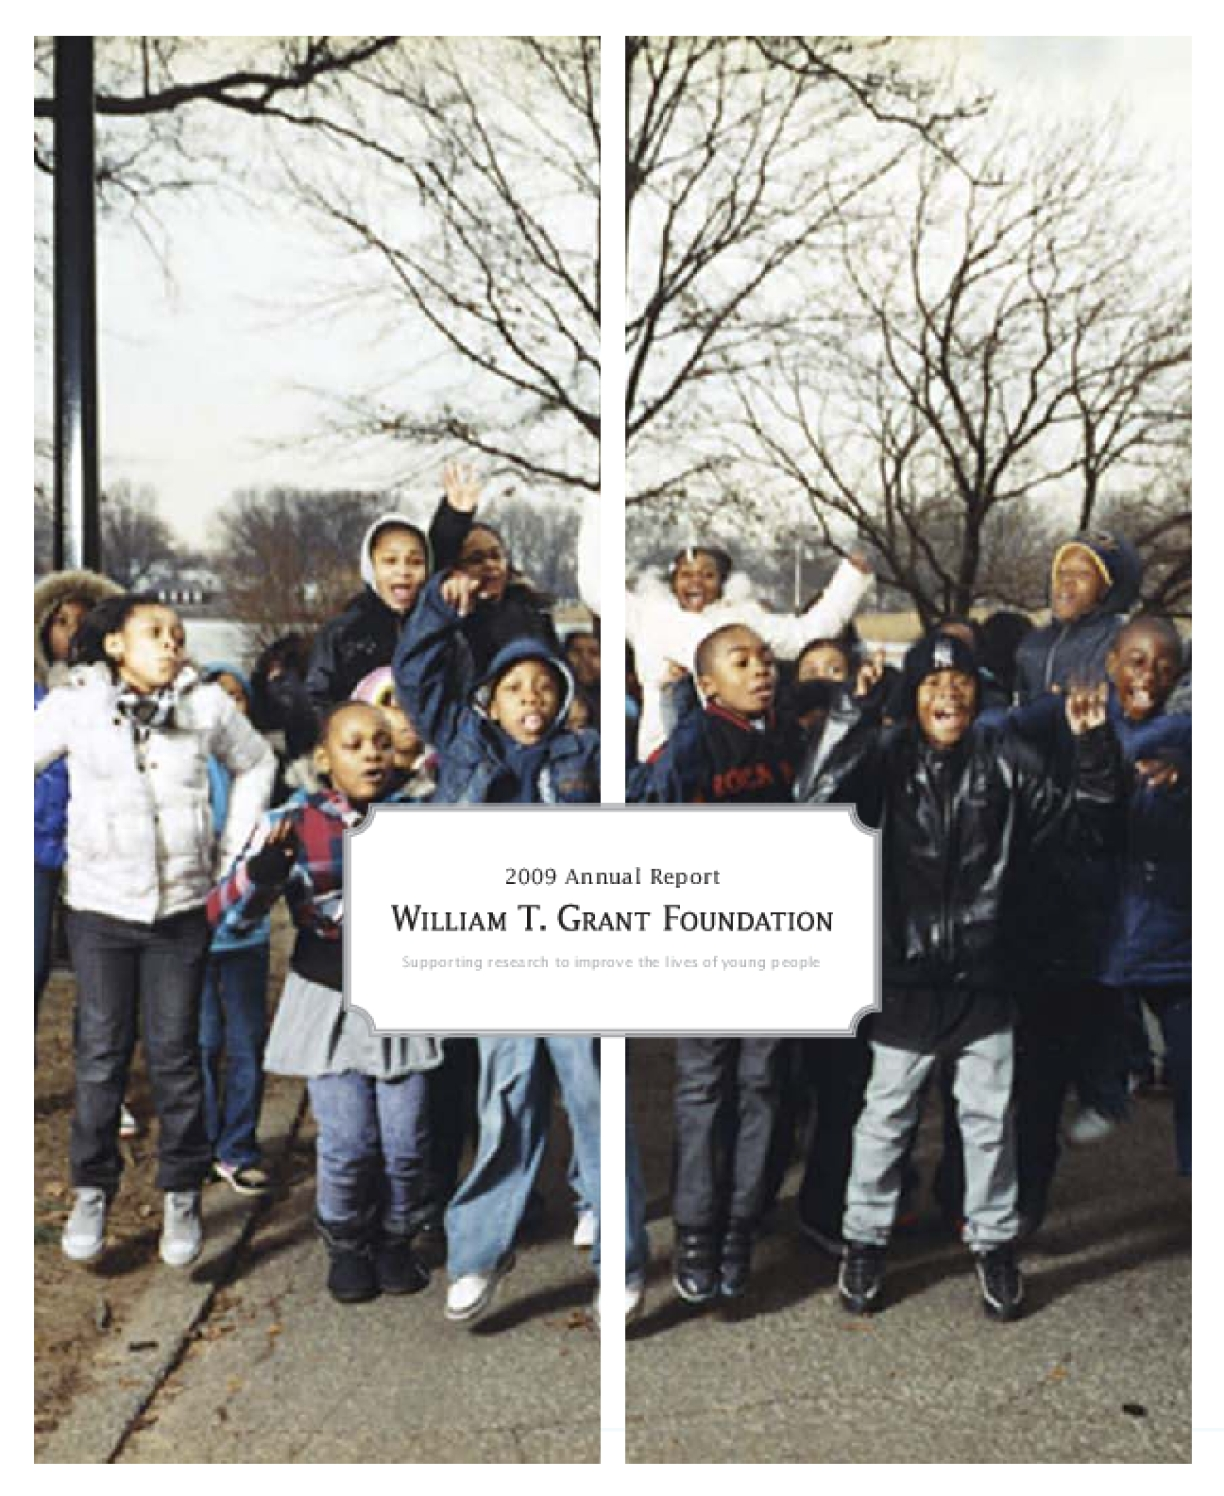 William T. Grant Foundation - 2009 Annual Report